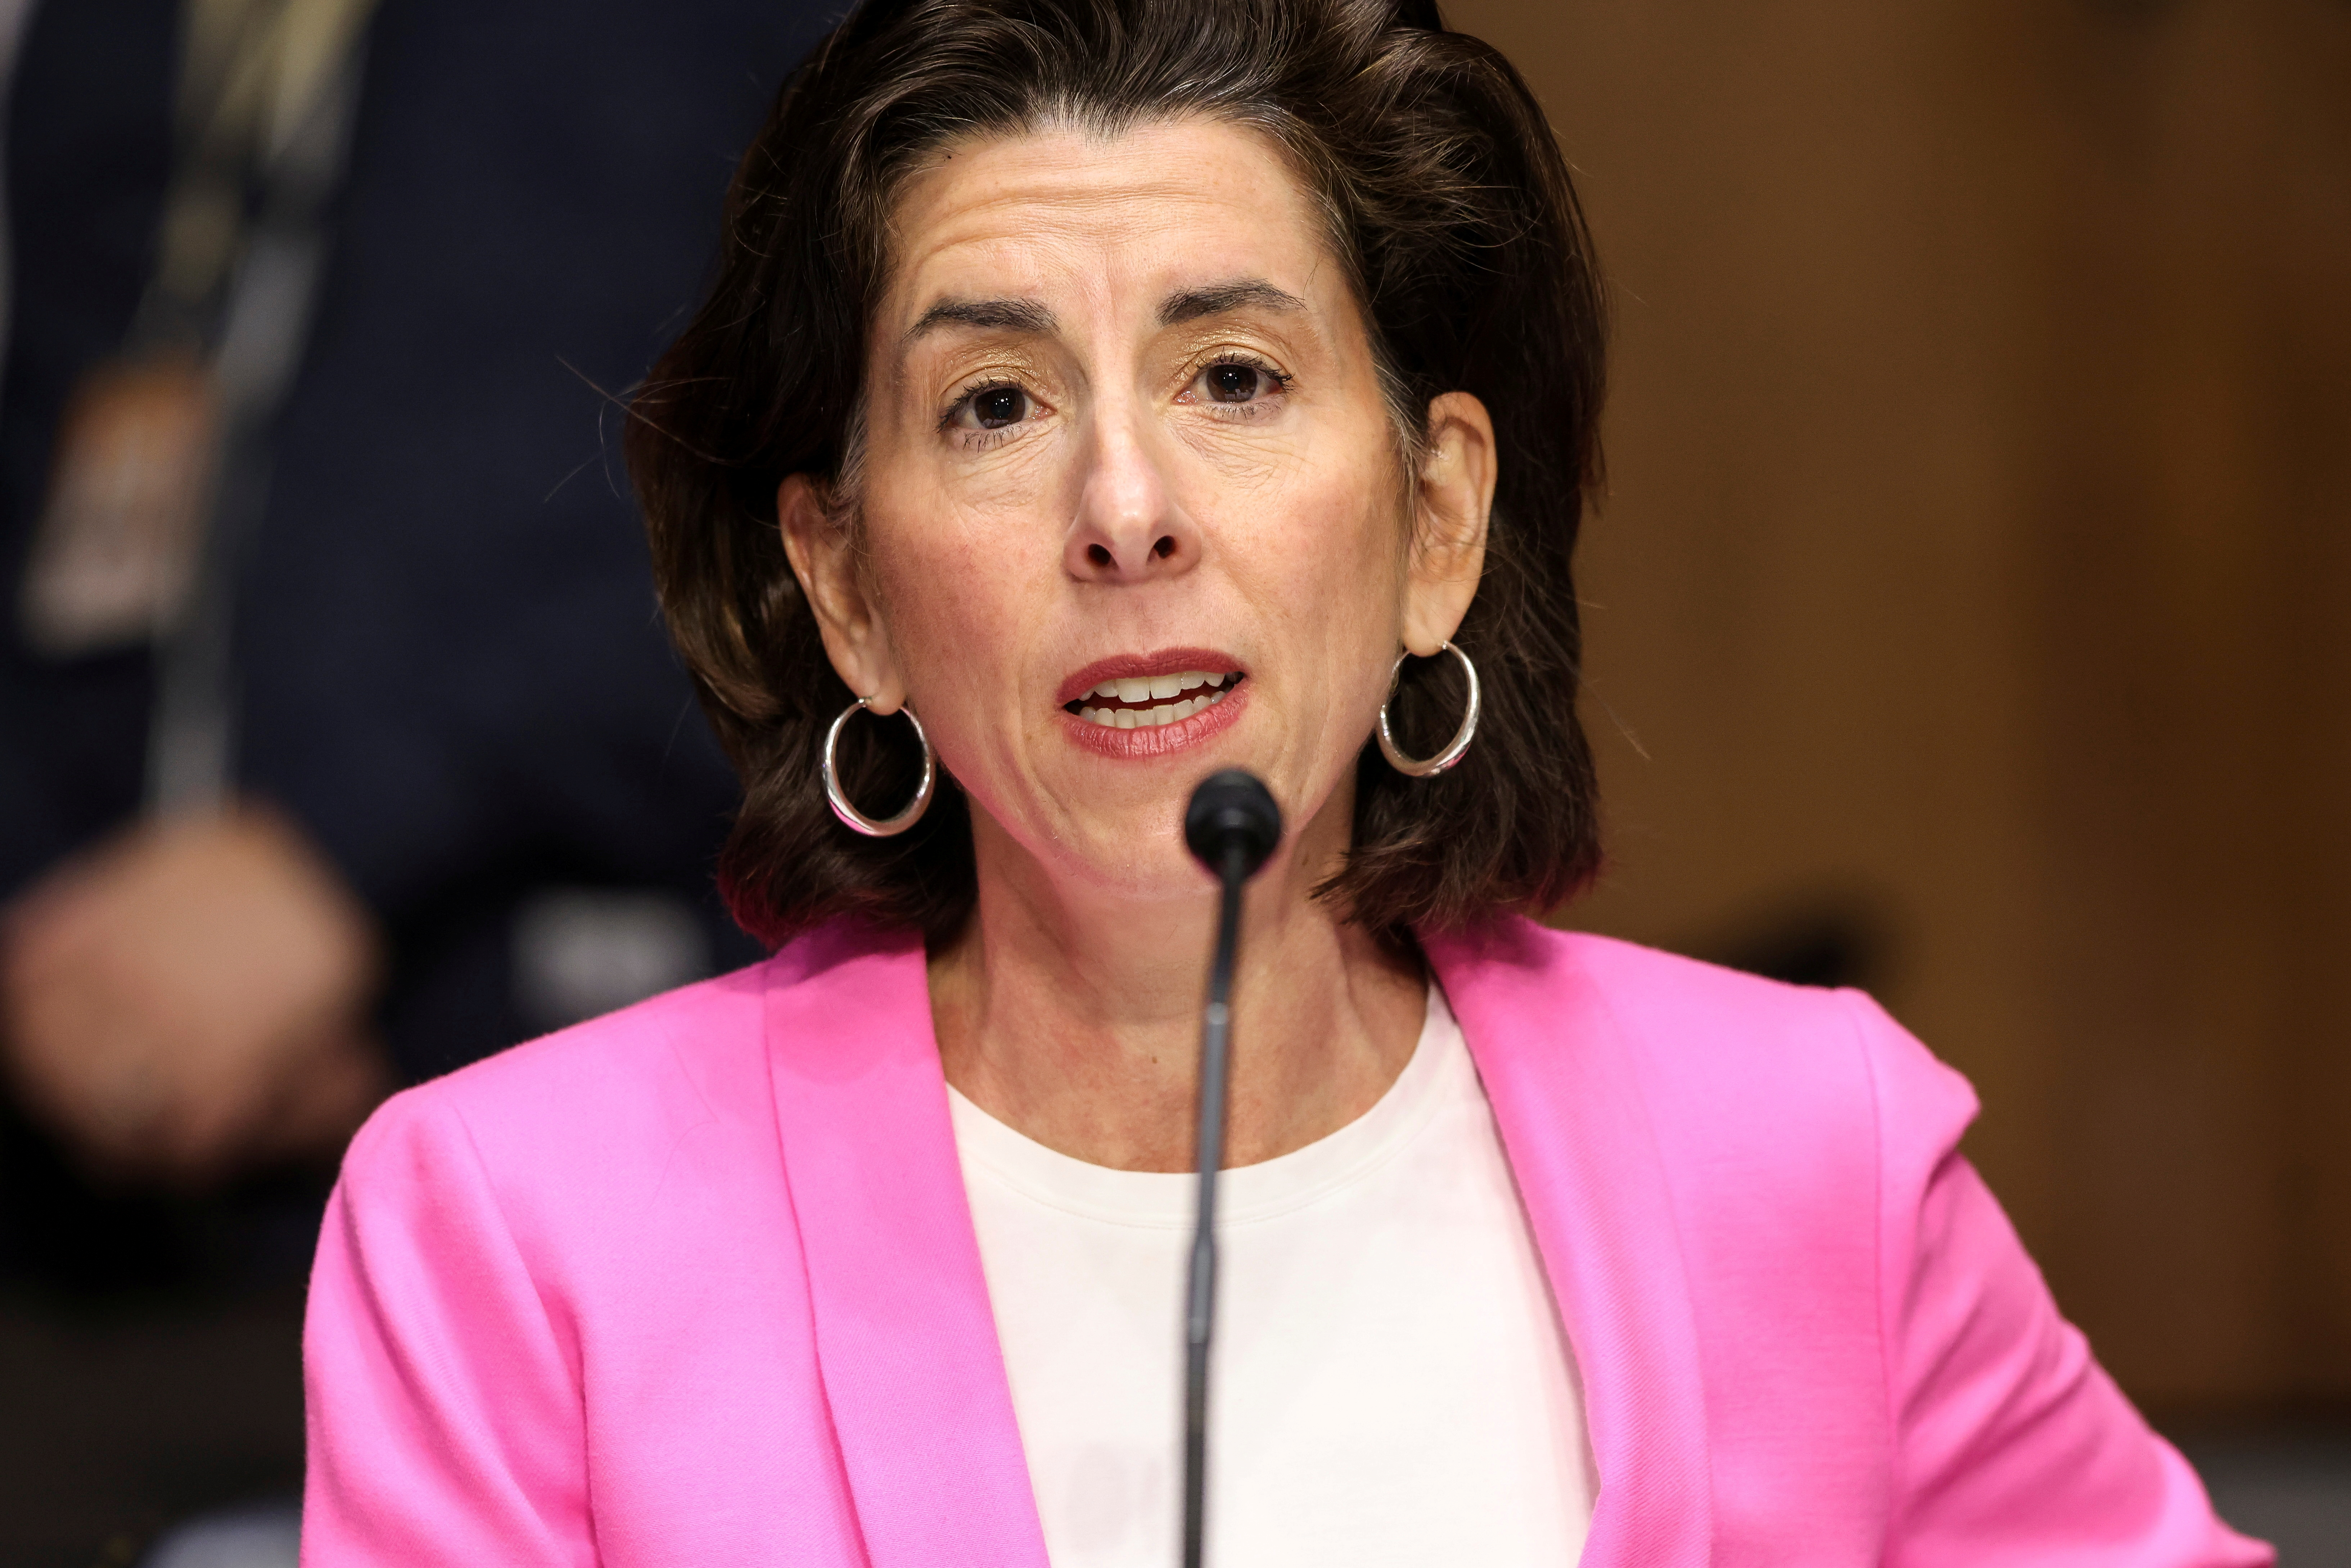 Commerce Secretary Gina Raimondo testifies before a Senate Appropriations Committee hearing to examine the American Jobs Plan, on Capitol Hill in Washington, D.C., U.S., April 20, 2021. Oliver Contreras/Pool via REUTERS